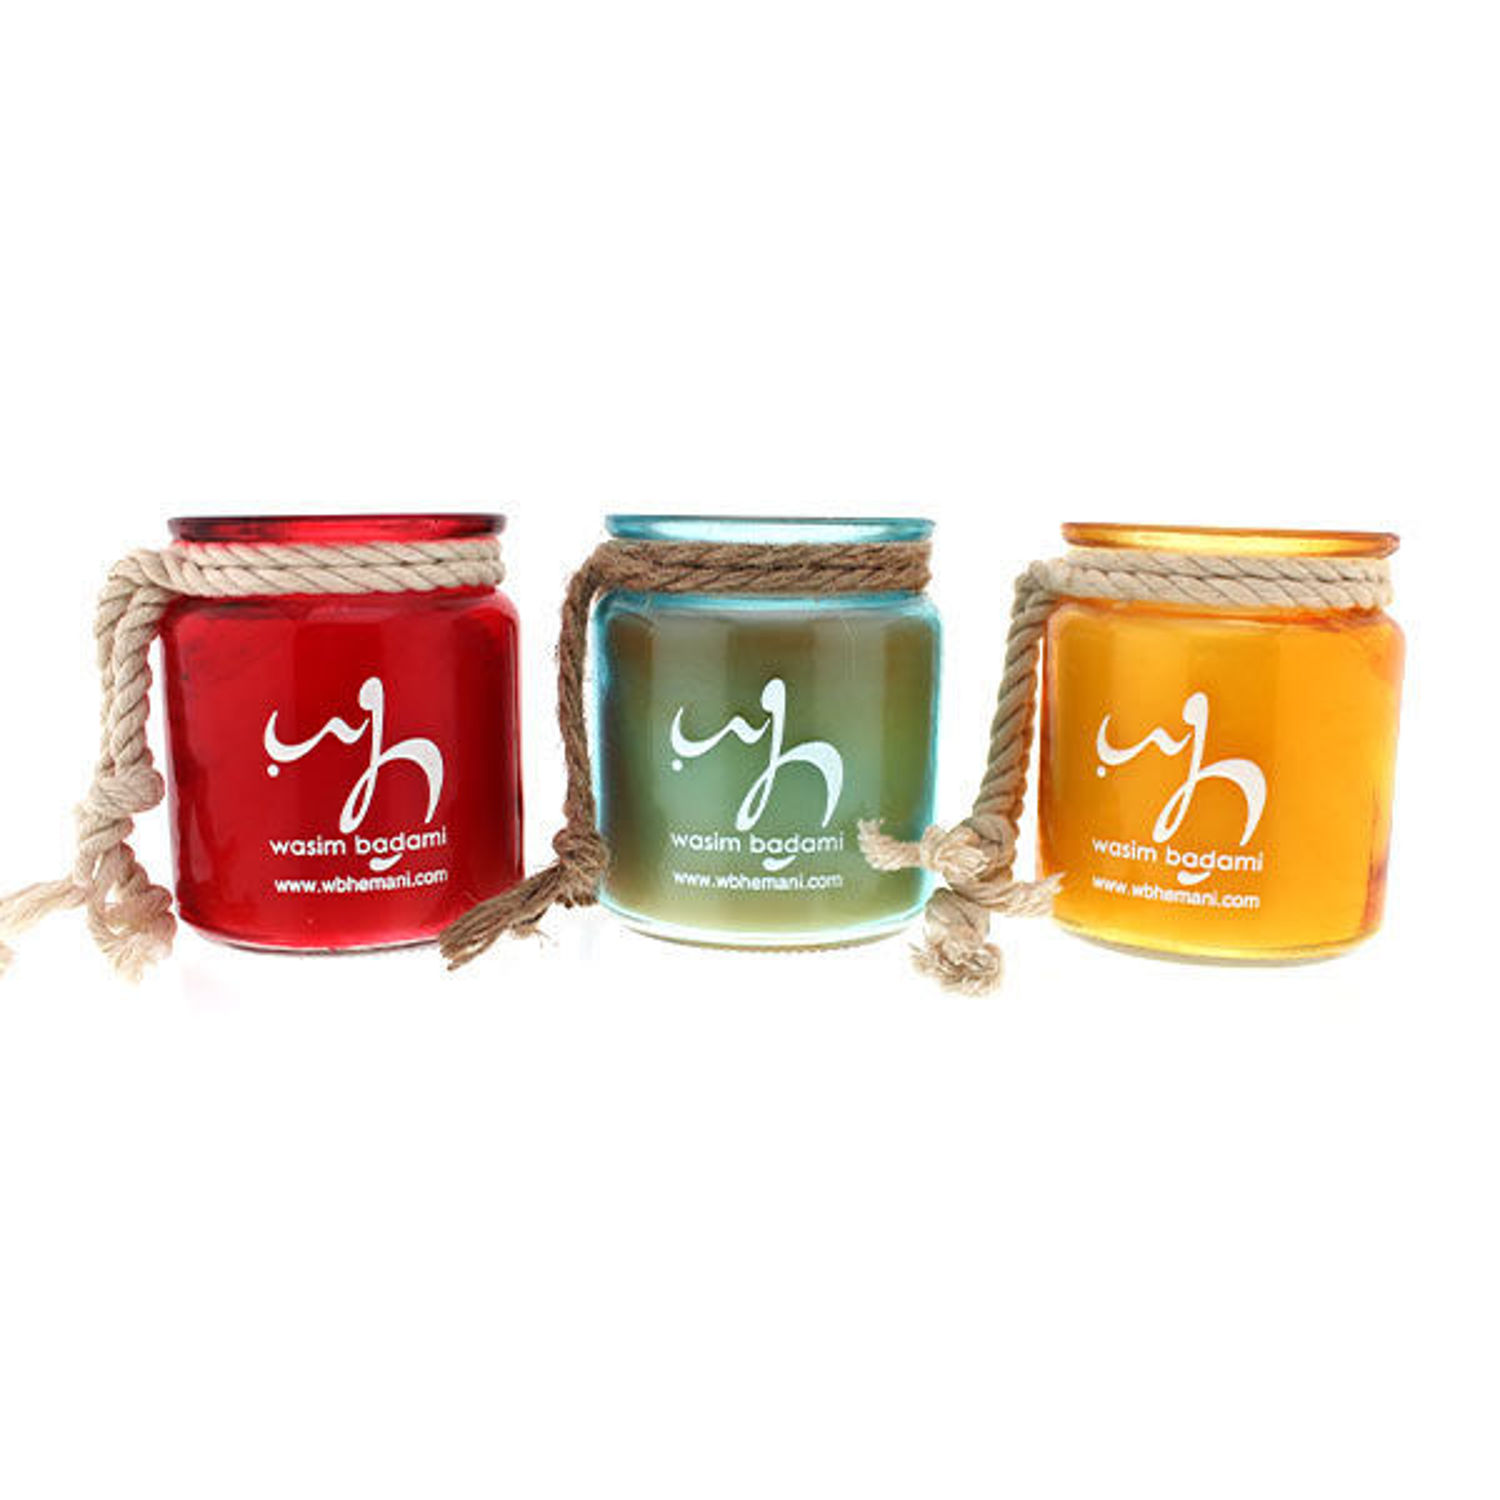 WB by Hemani floral scented candles